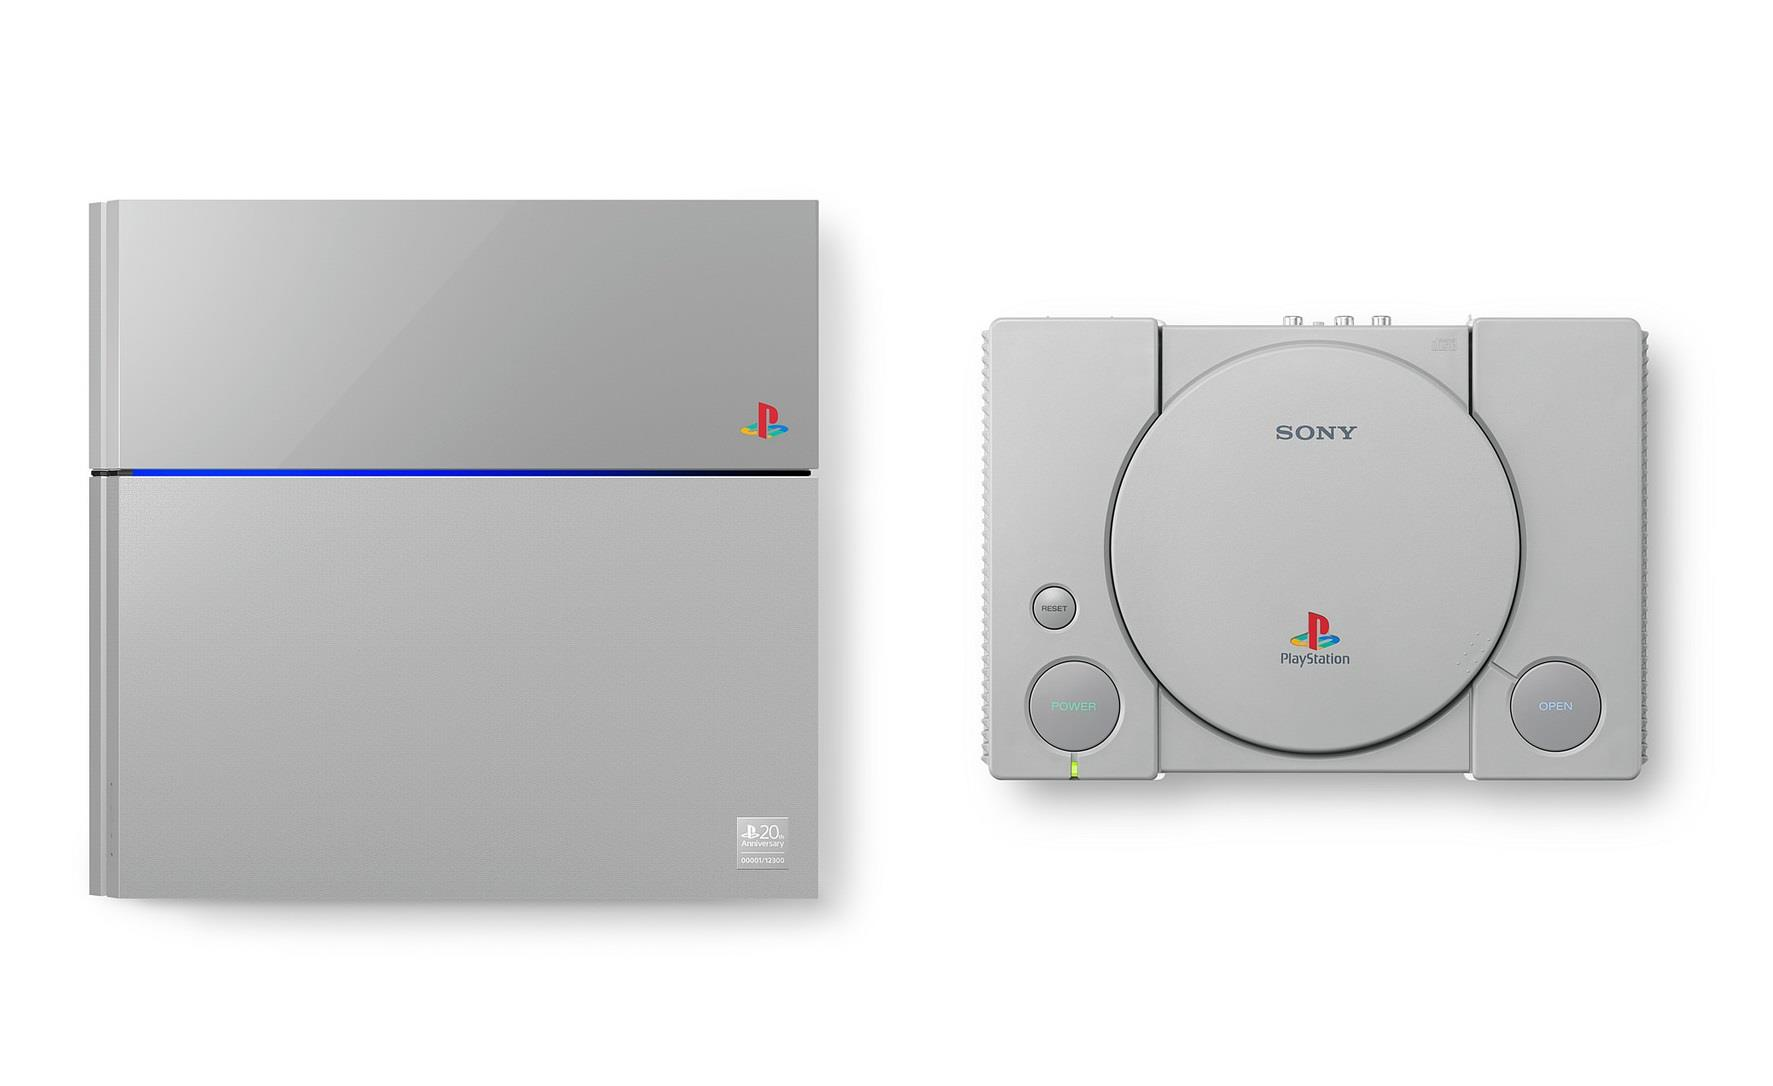 Sony Celebrates 20 Years of PlayStation With Limited Edition Console